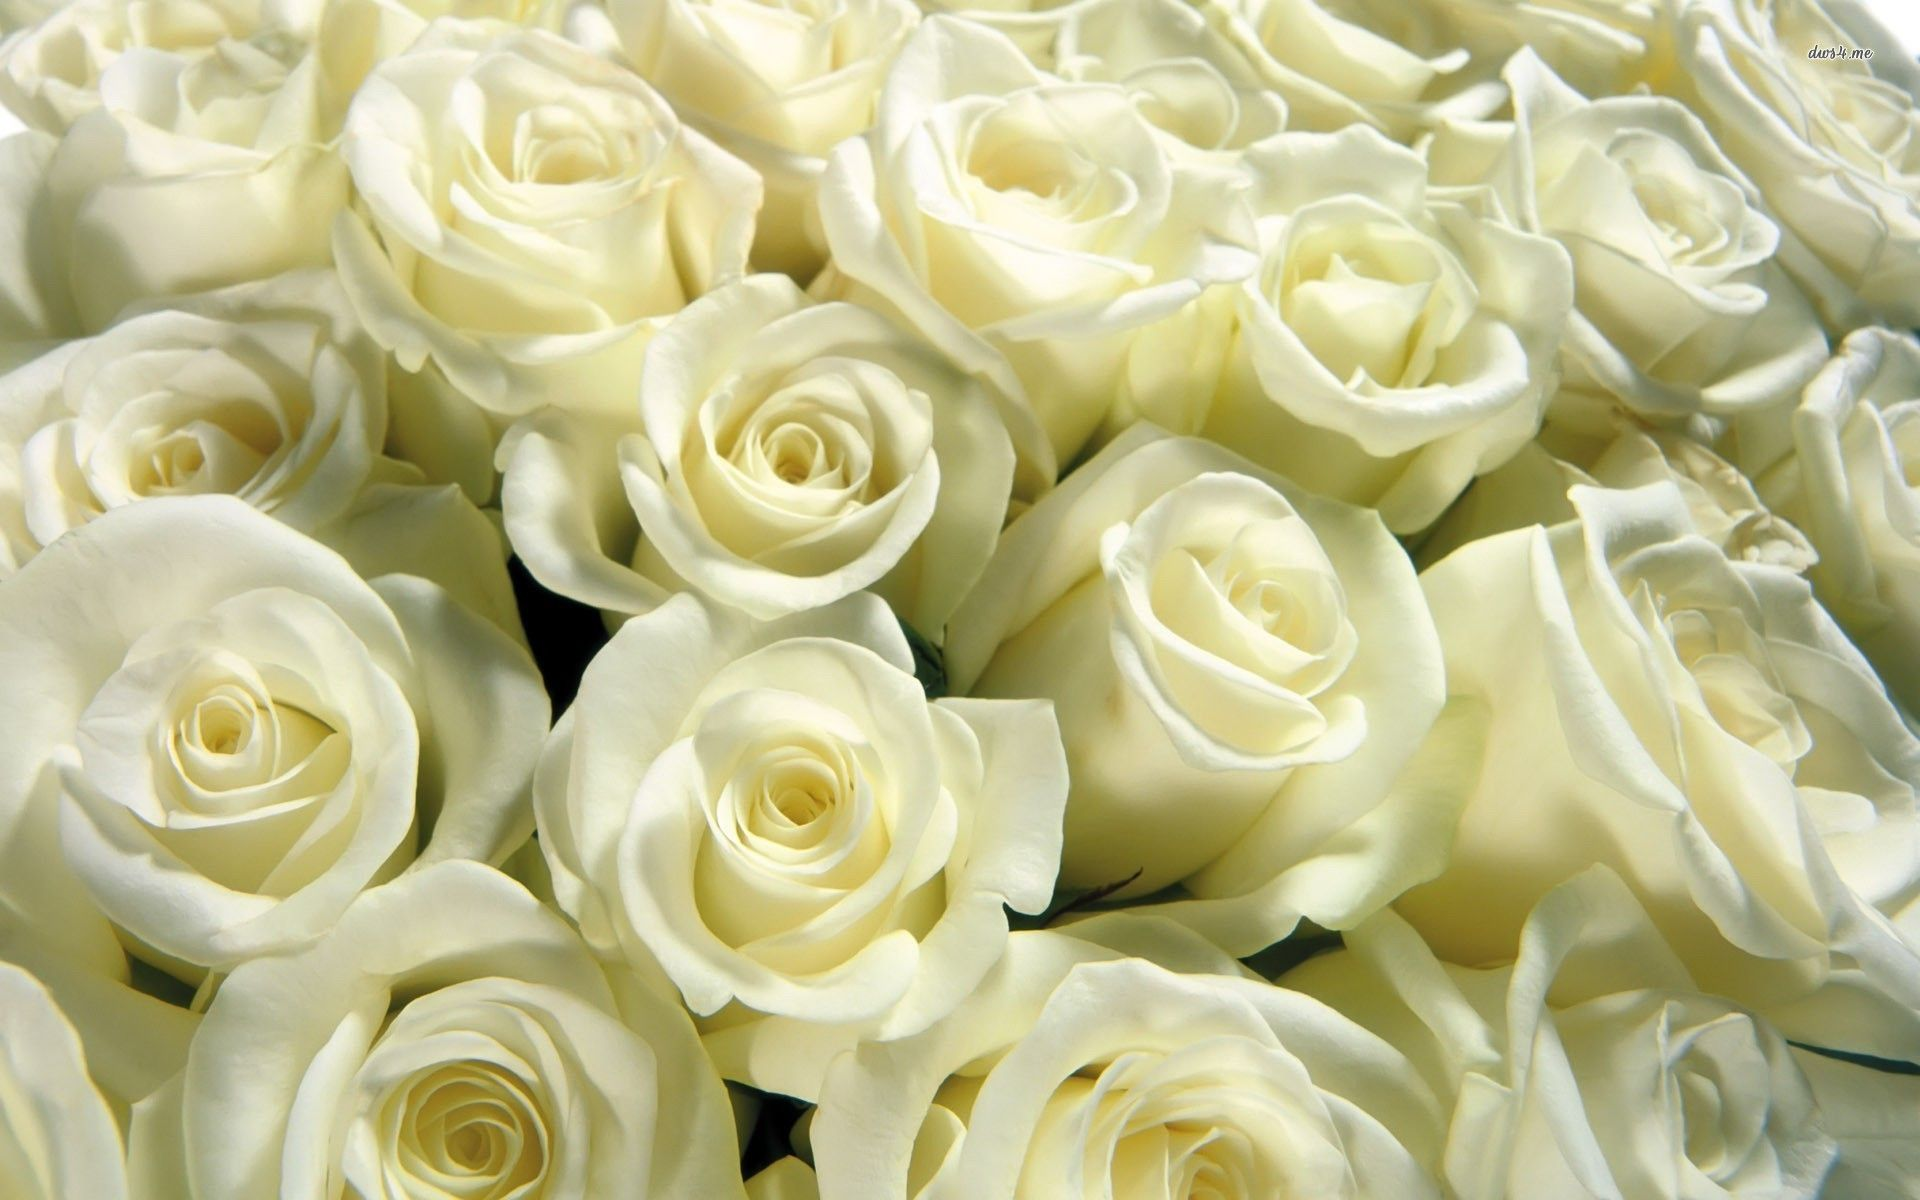 white rose photos and wallpapers 1920×1200 white rose wallpaper (54